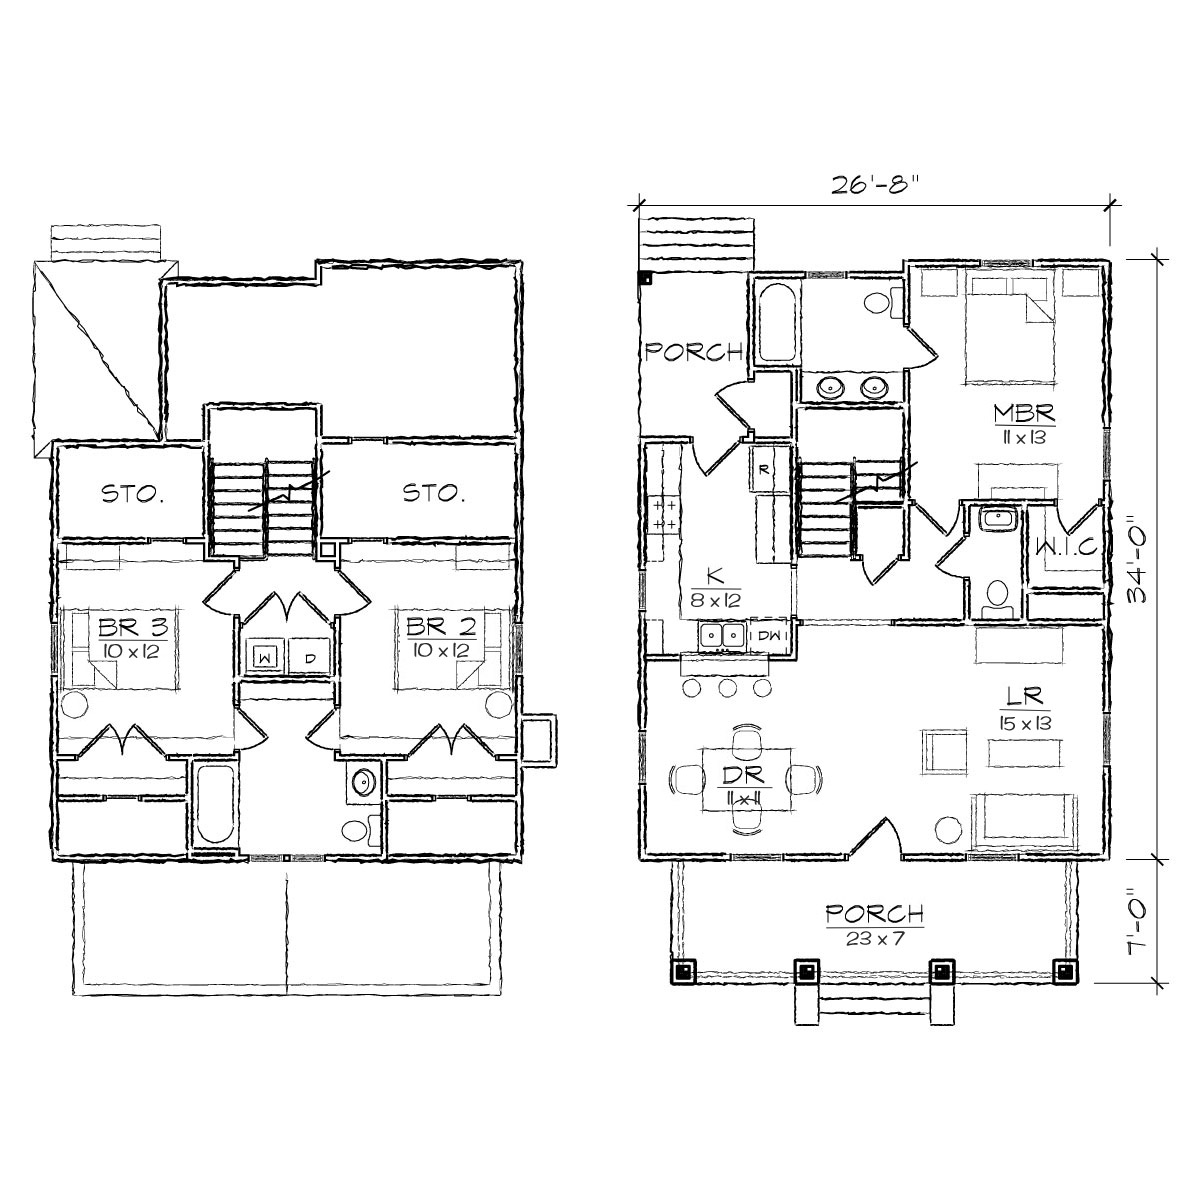 bungalow house floor plans with dormers robinson bungalow